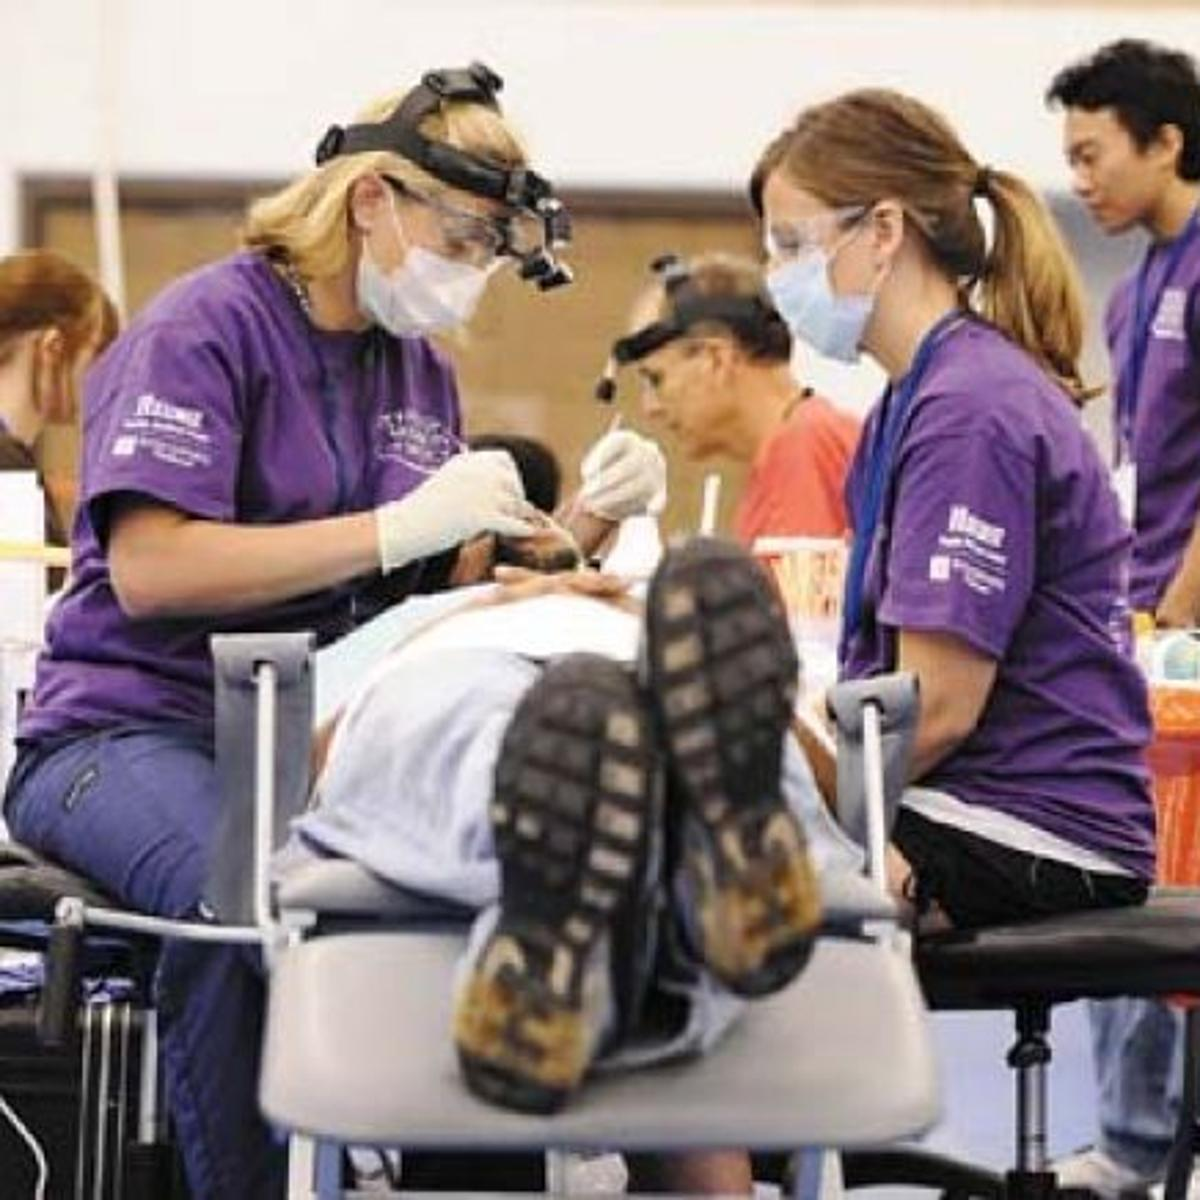 About 1,000 treated at free Waco dental clinic | News